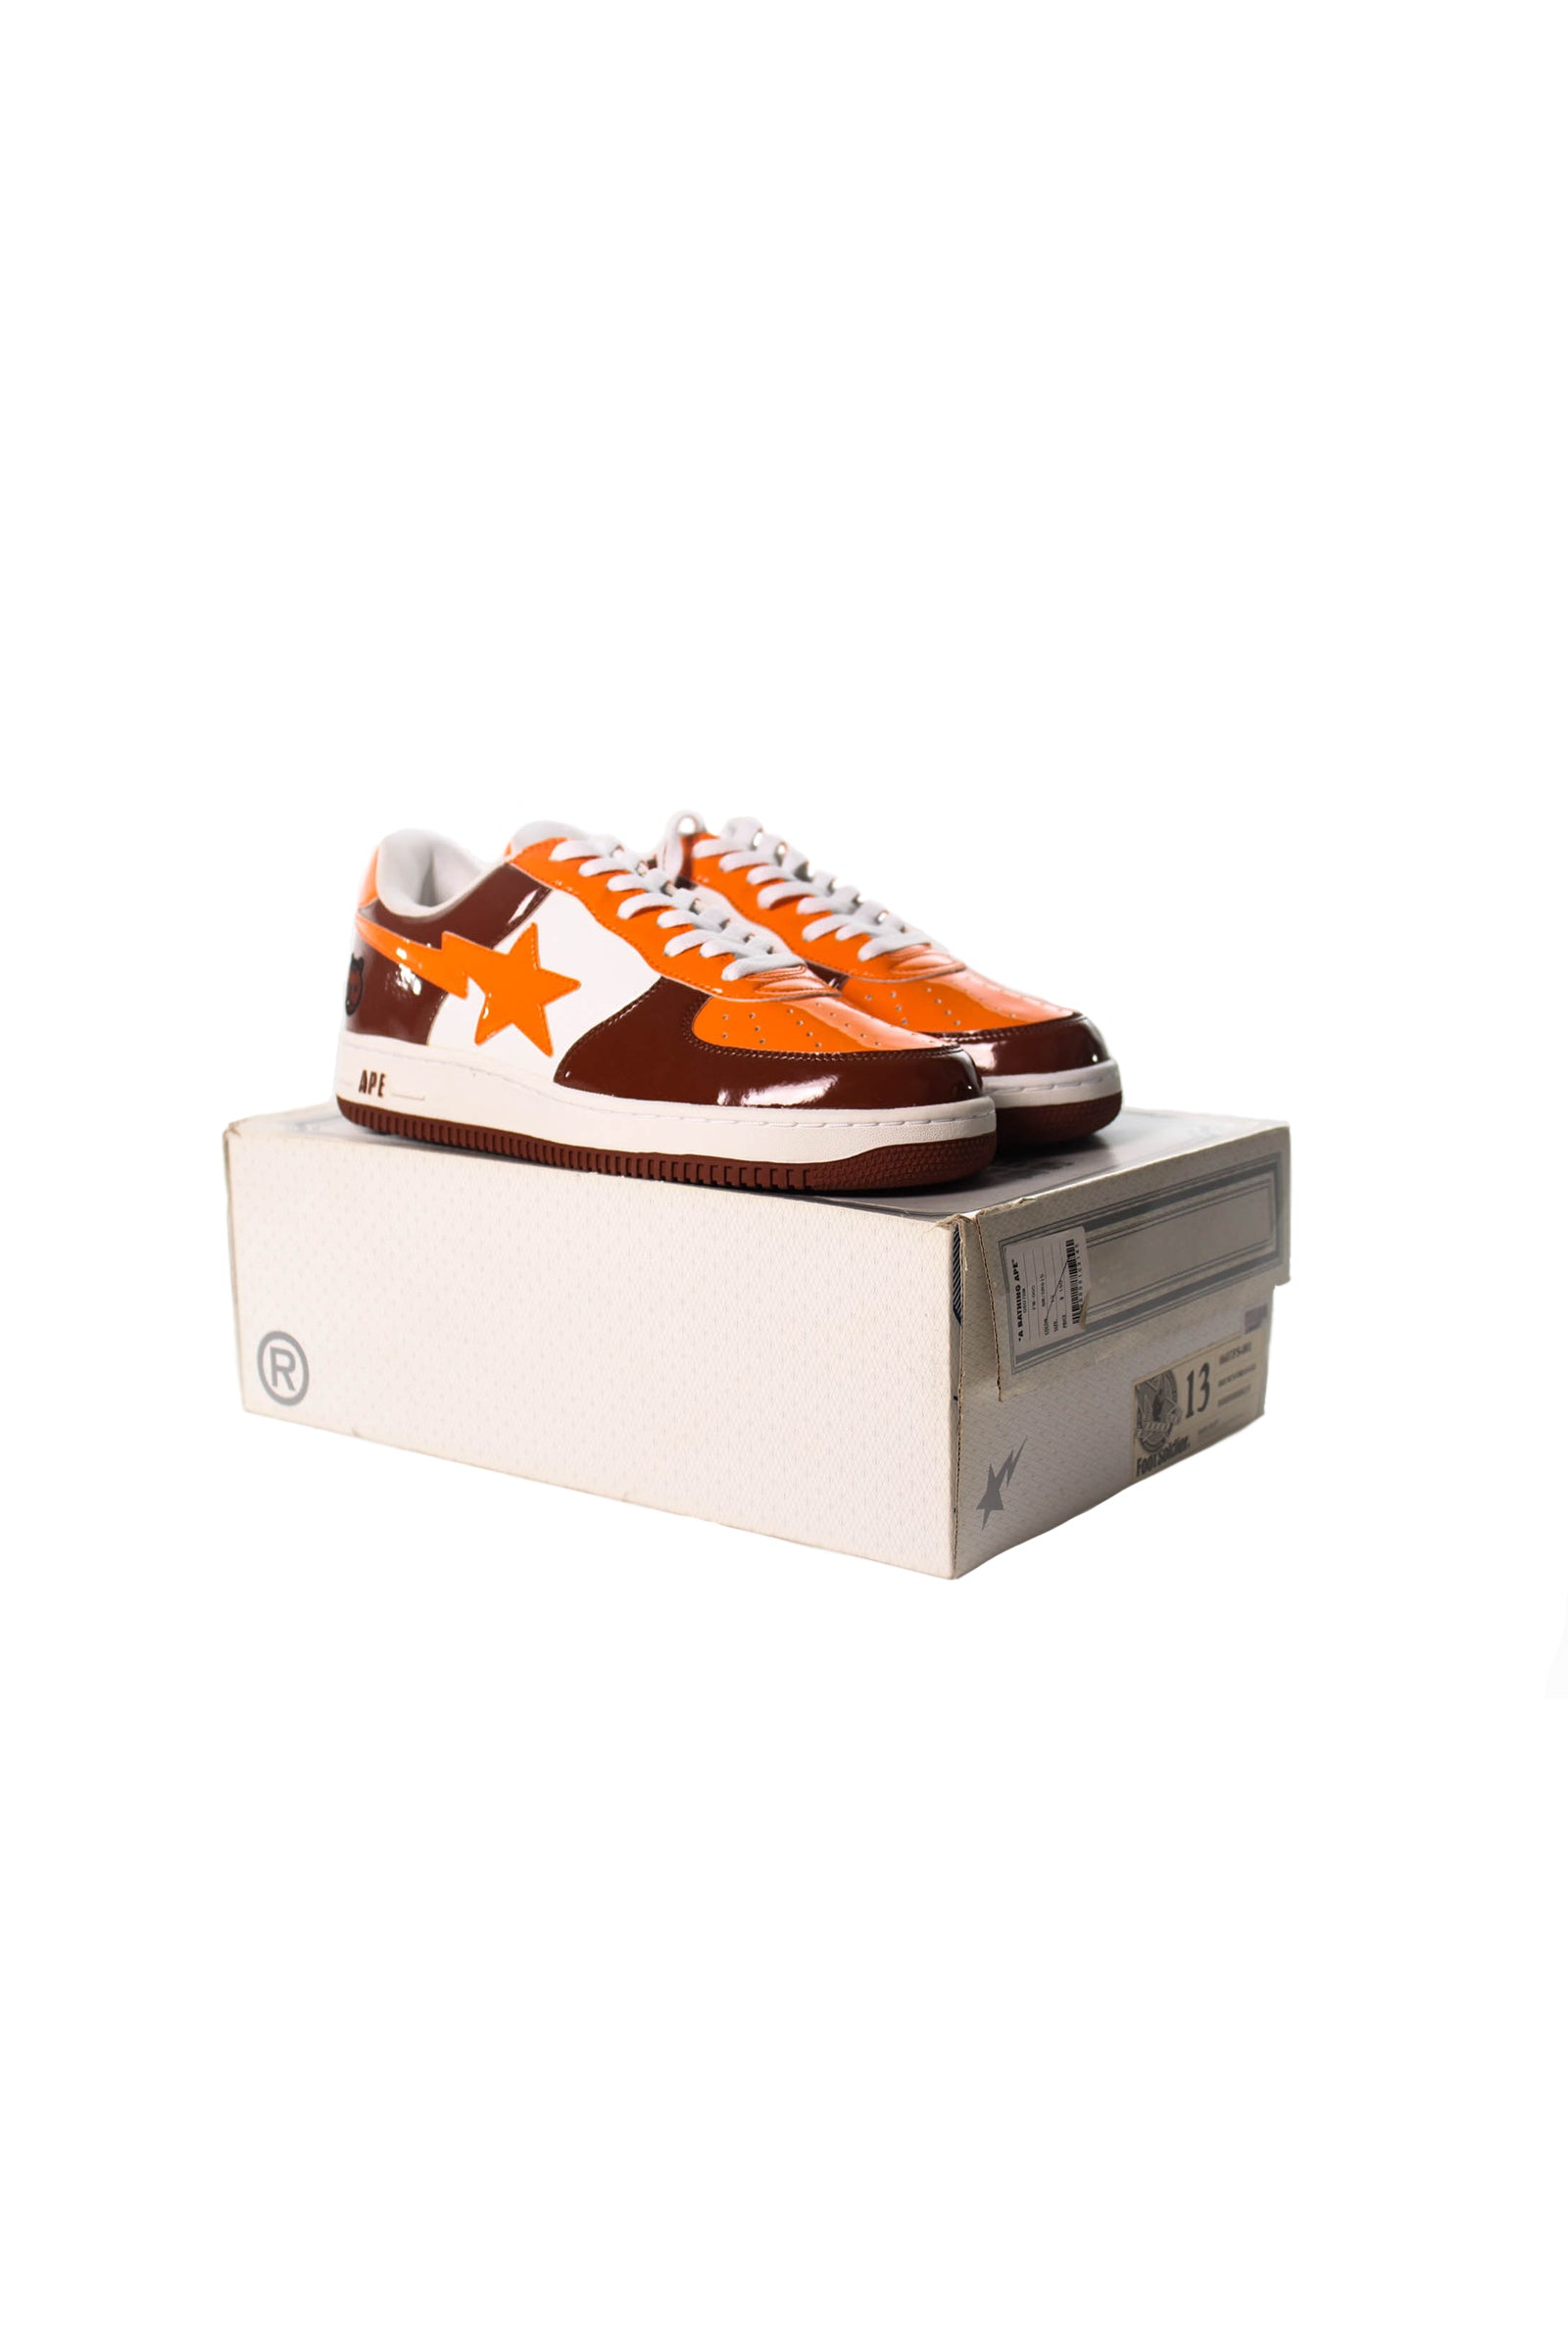 Bathing Ape Orange and Brown